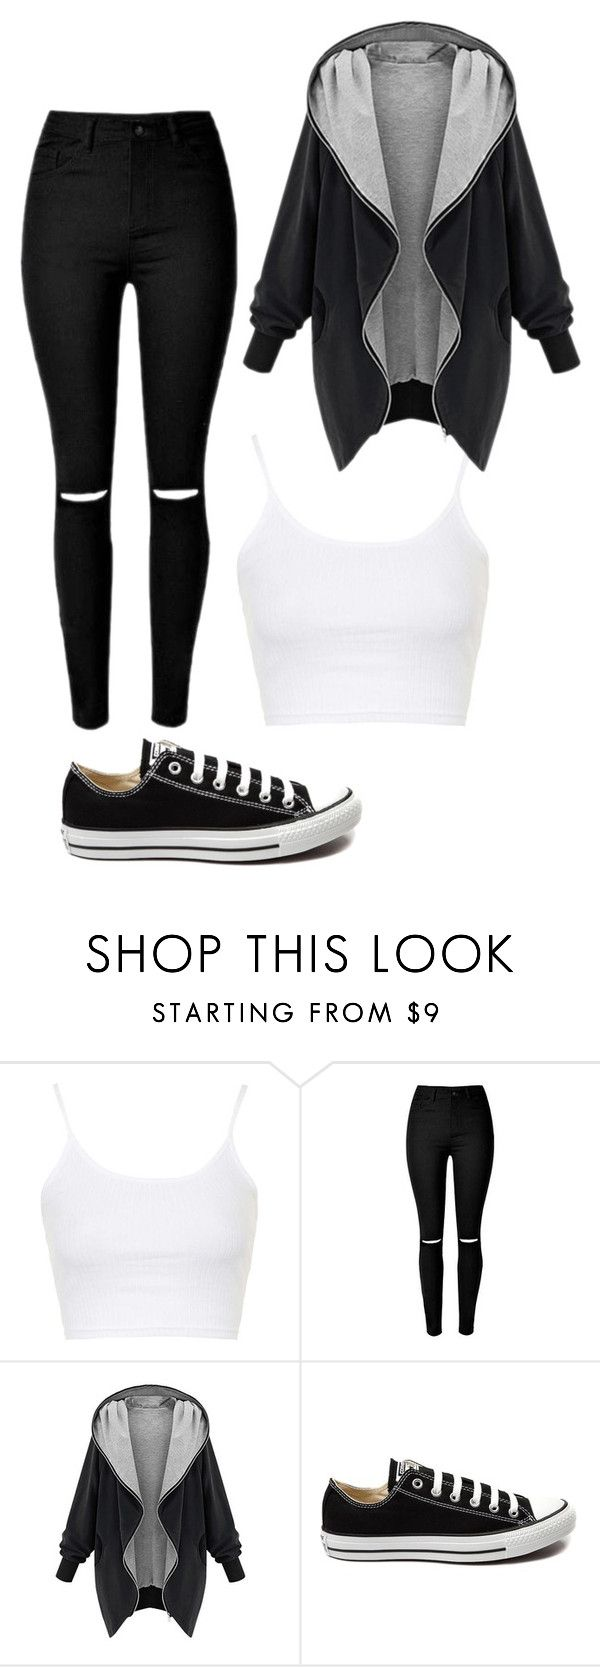 """""""Untitled #405"""" by rose-tyler-i-doctorwho ❤ liked on Polyvore featuring Topshop, Converse, women's clothing, women, female, woman, misses and juniors"""